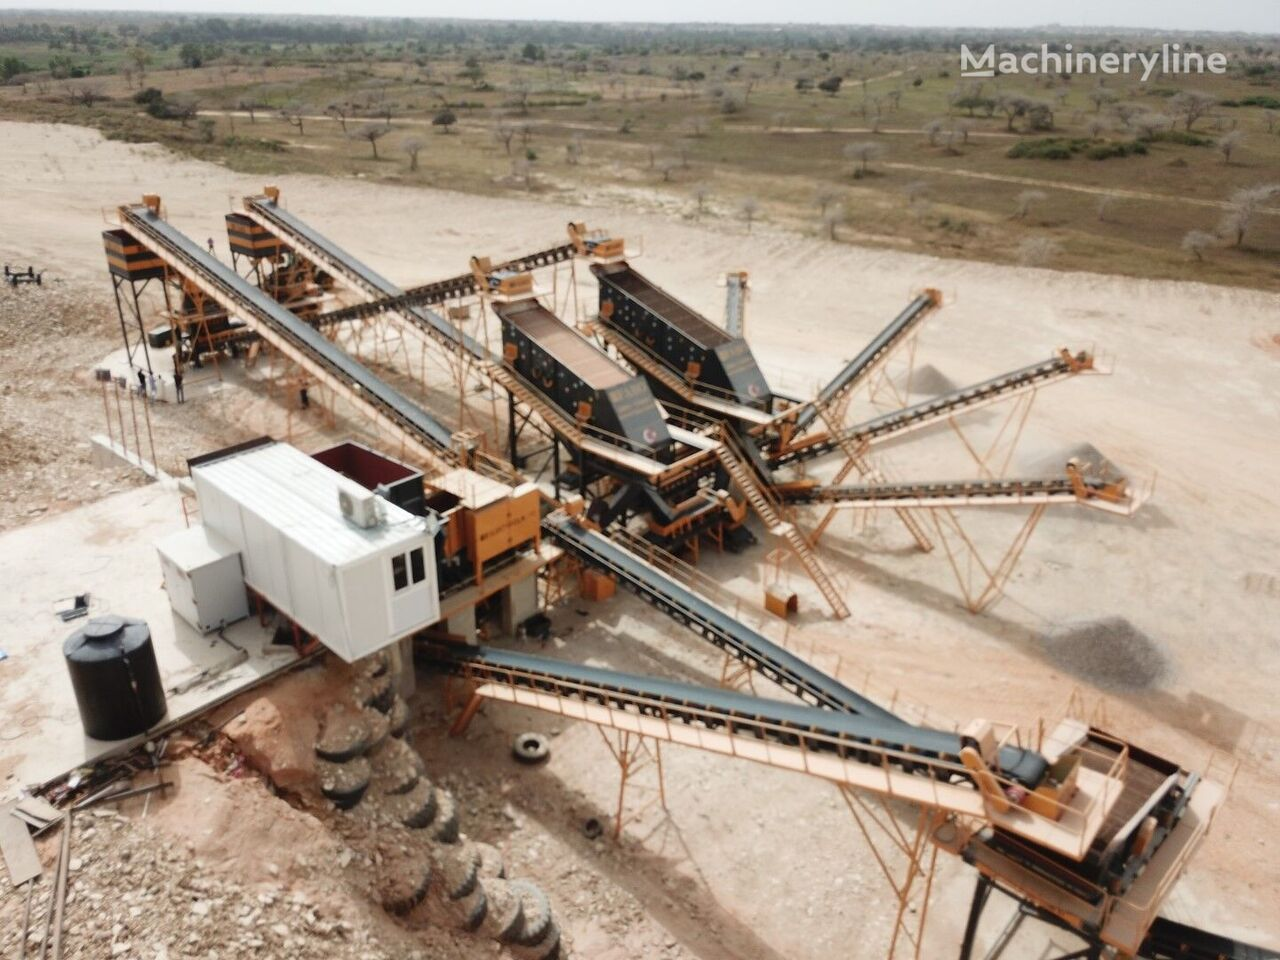 concasseur FABO STATIONARY TYPE 200-350 T/H HARDSTONE CRUSHING & SCREENING PLANT neuf